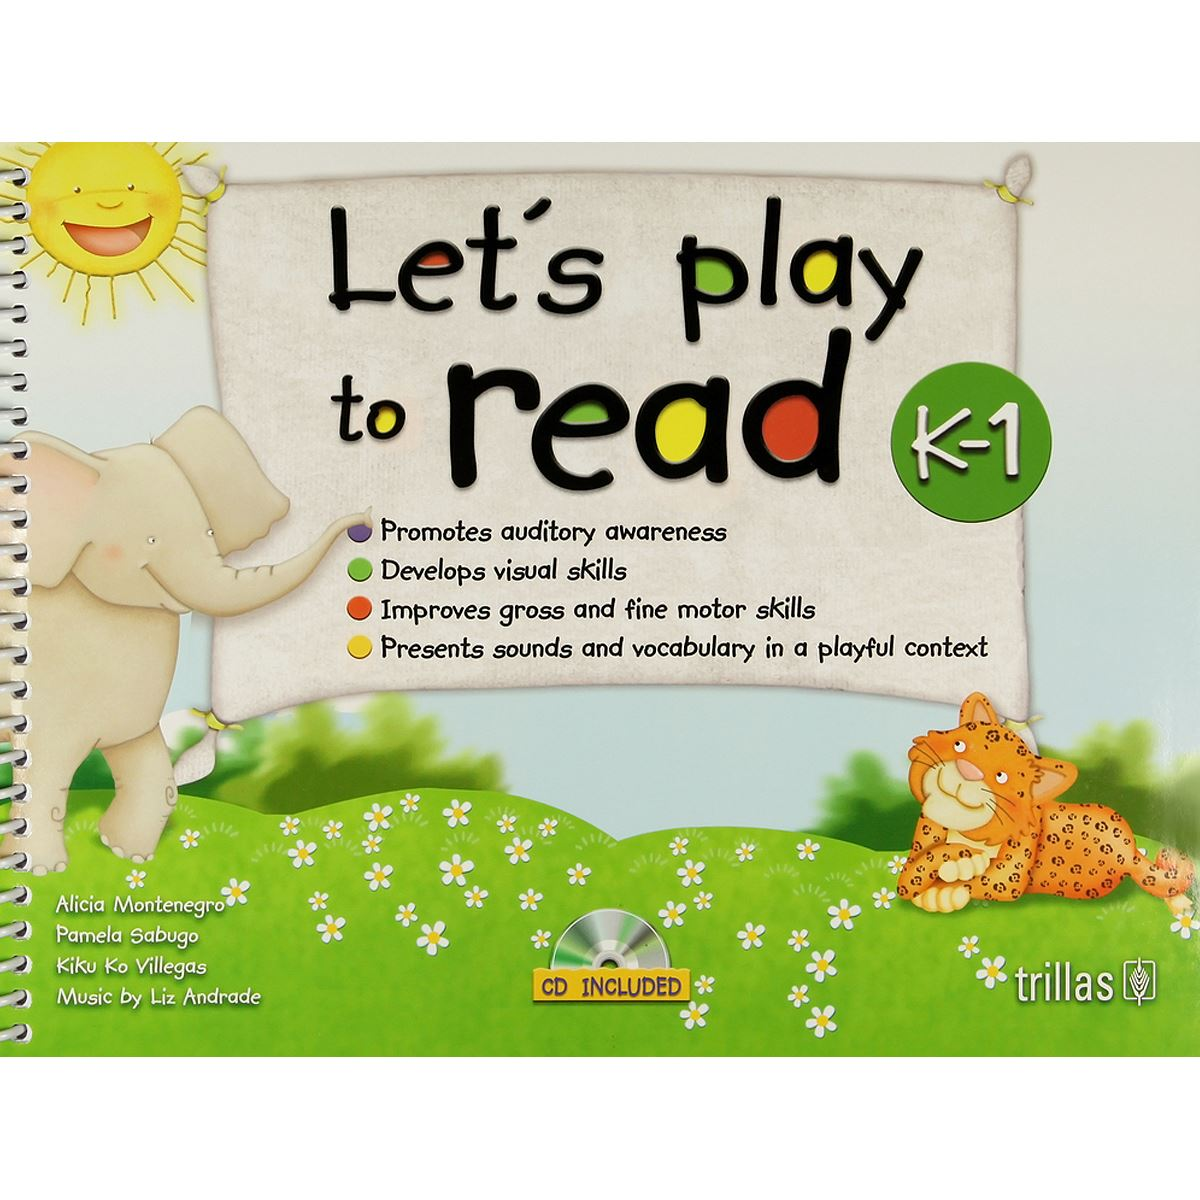 LetS Play To Read K-1. Cd Included